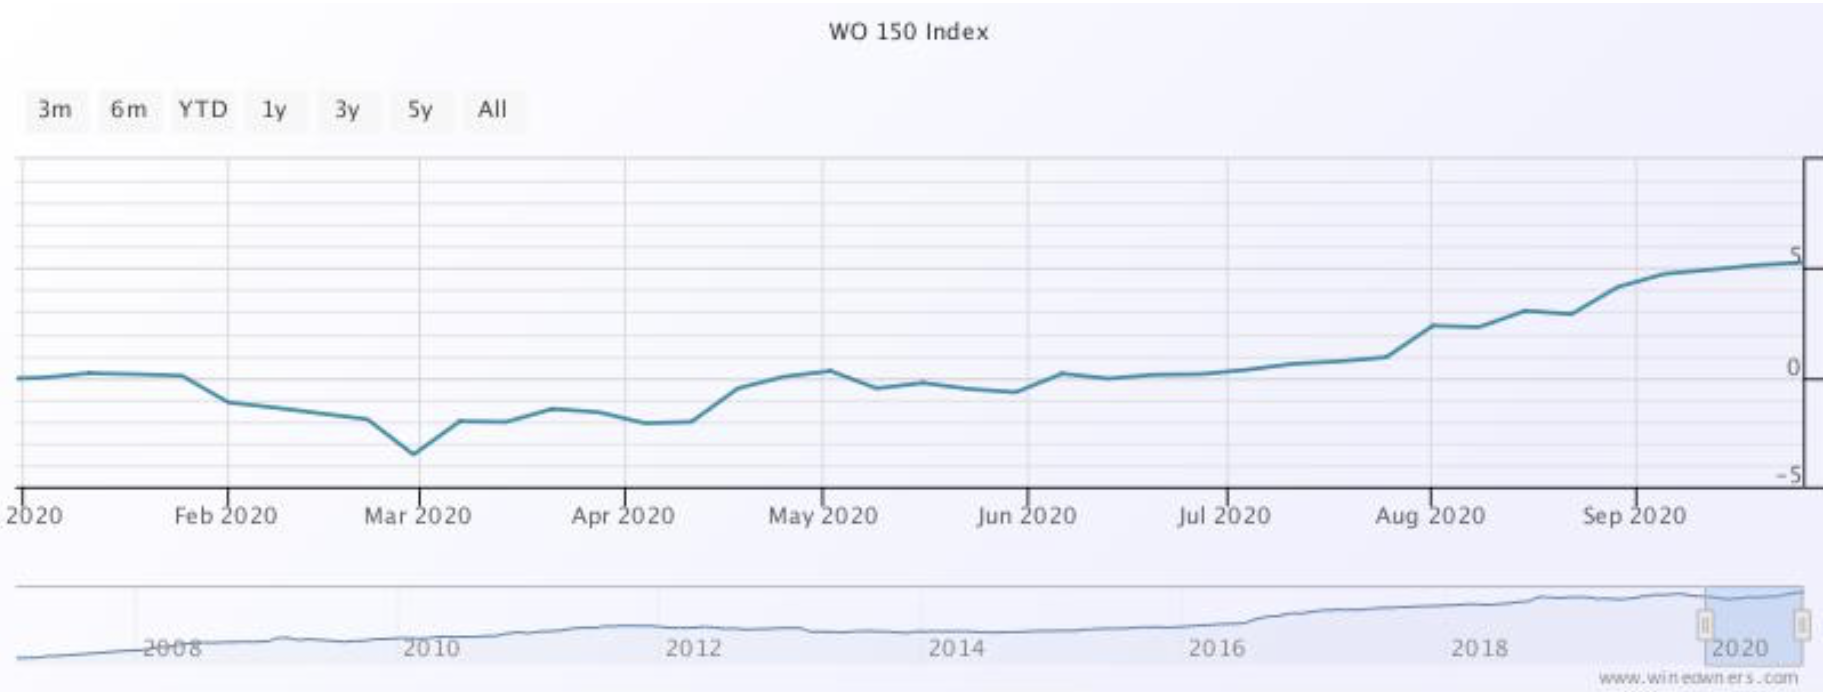 Wine Owners - WO150 Index Sept 2020